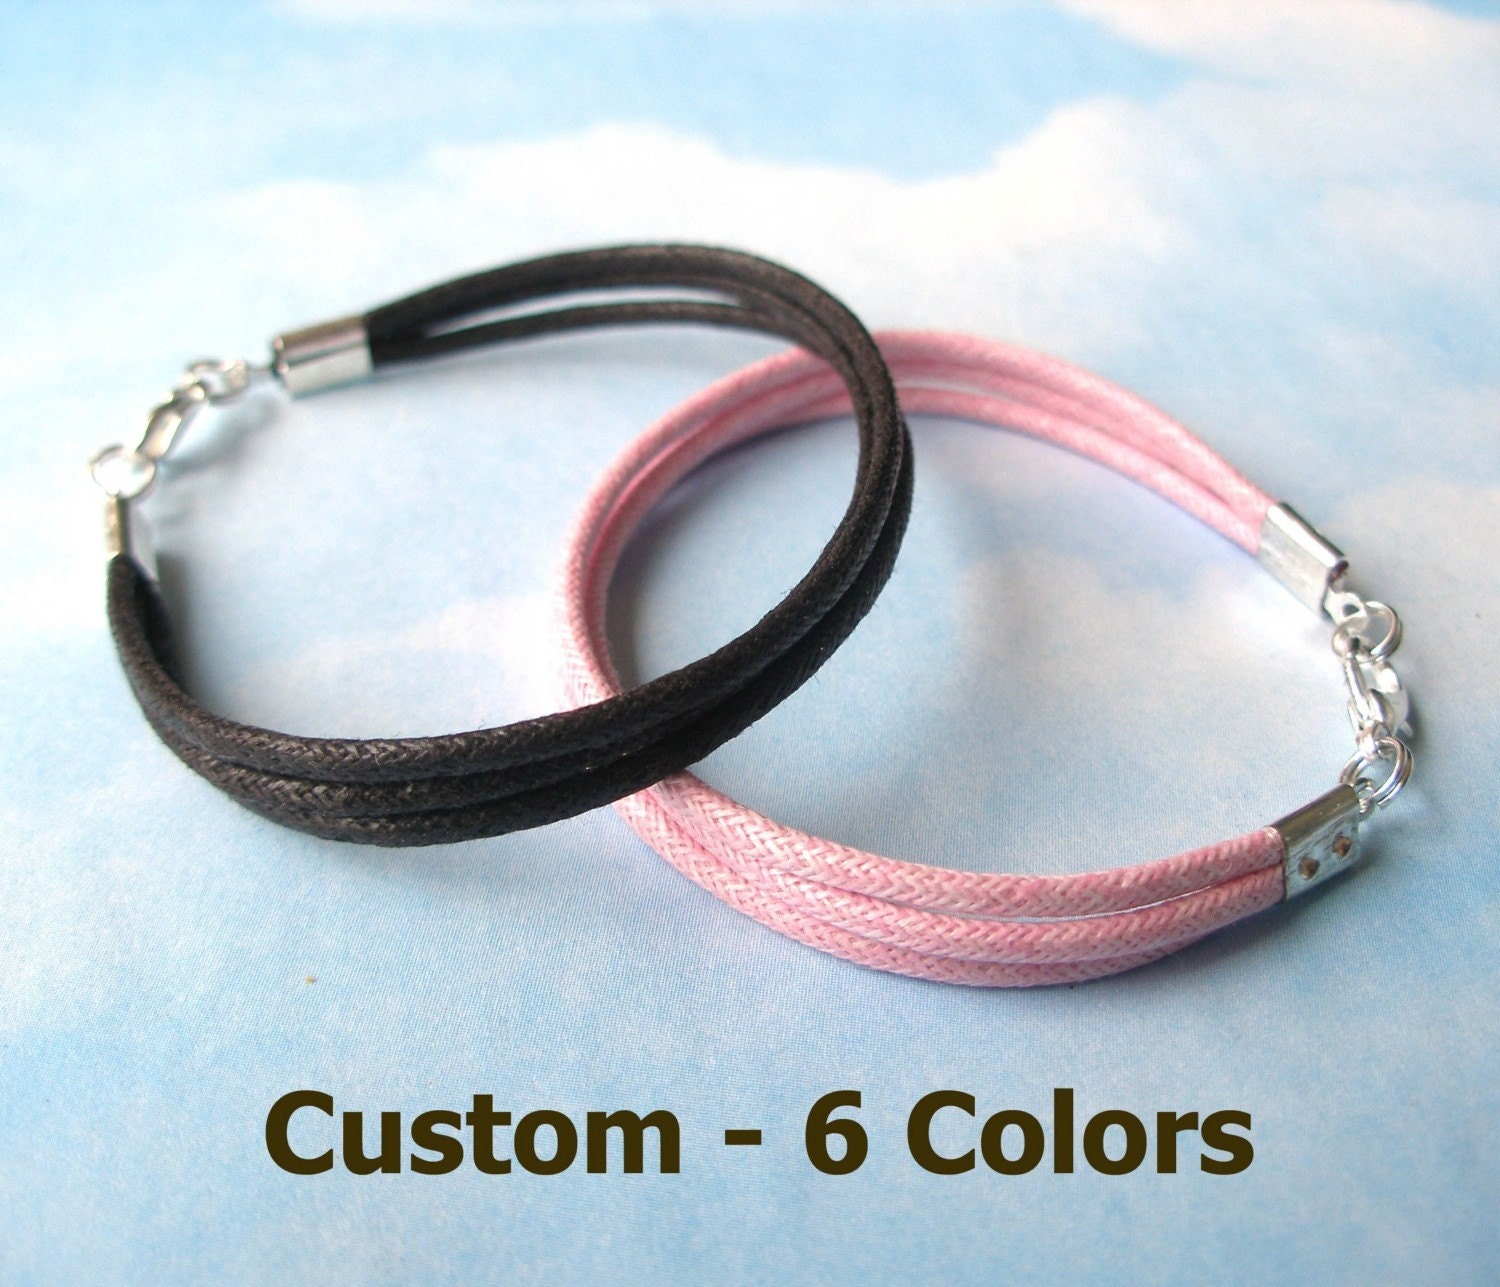 12 - Waxed Cotton Bracelets - Custom - Any length, 6 colors. Great Party Favors